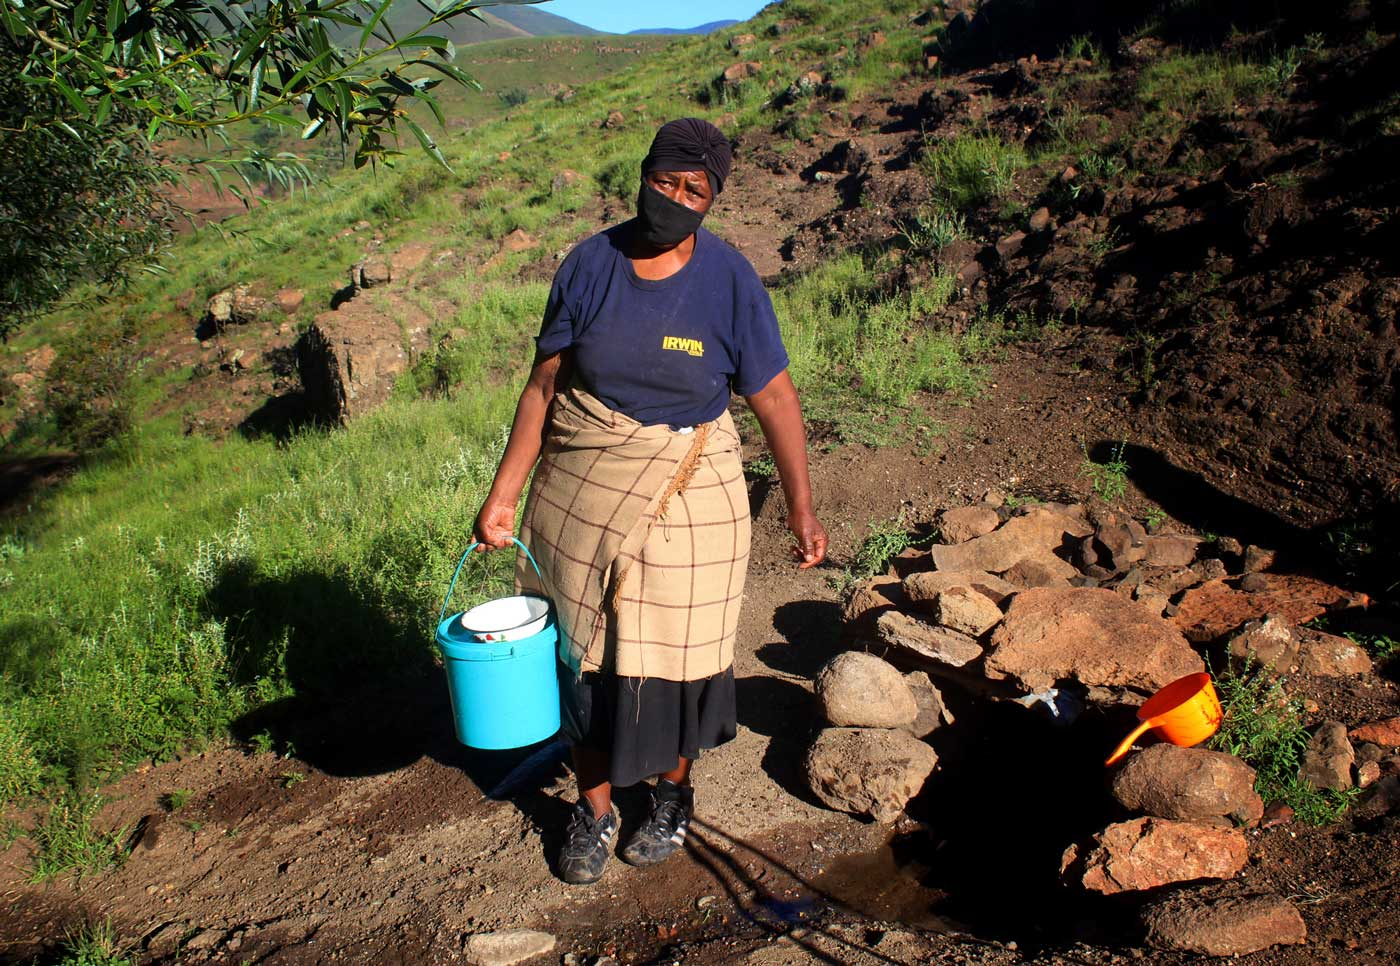 A woman walks along a rock mountain path holding a blue bucket filled with well water